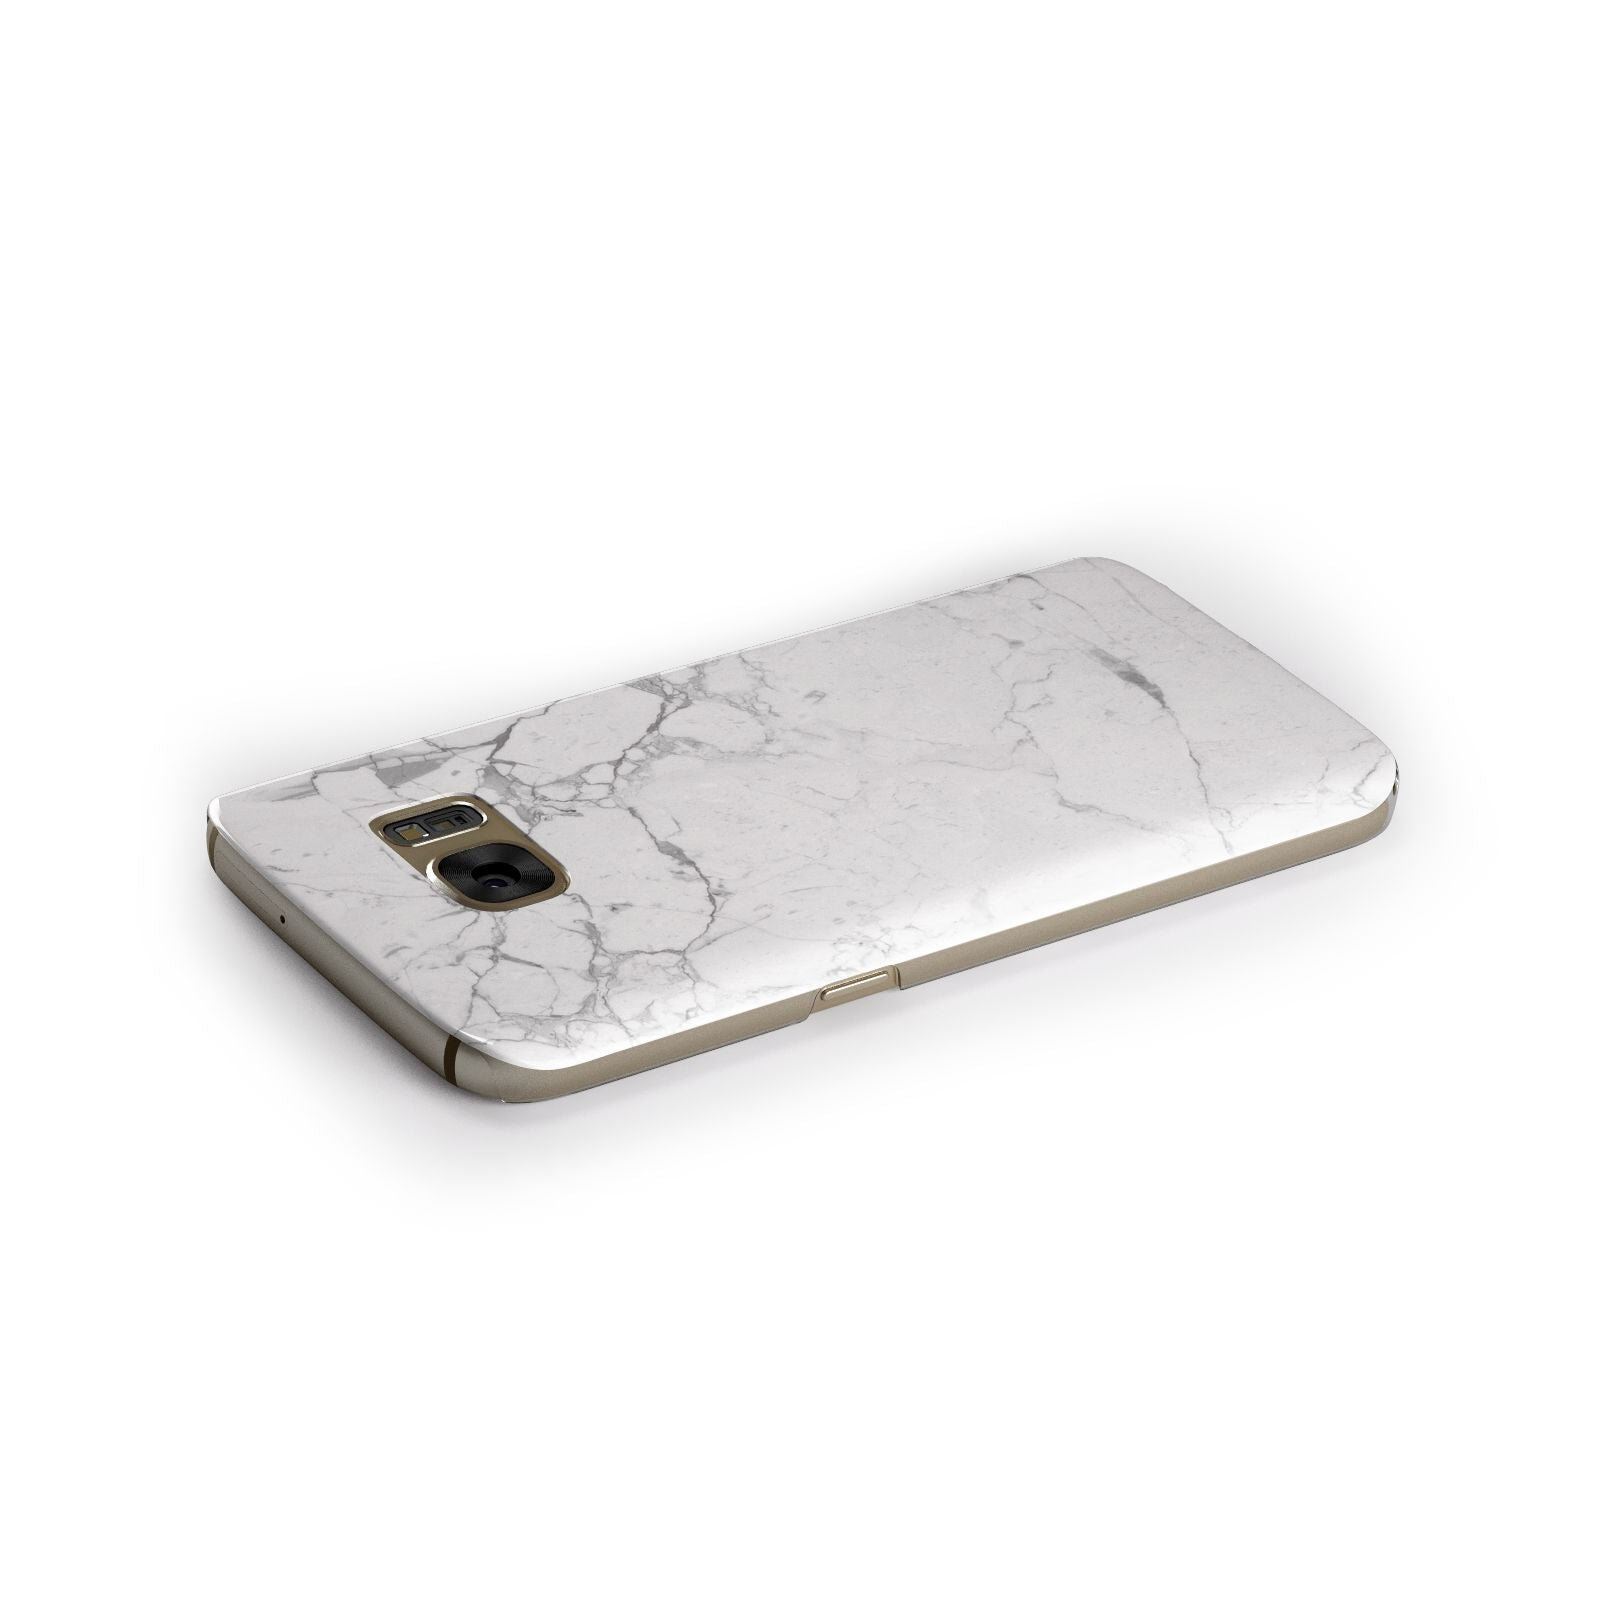 Faux Marble Effect Grey White Samsung Galaxy Case Side Close Up